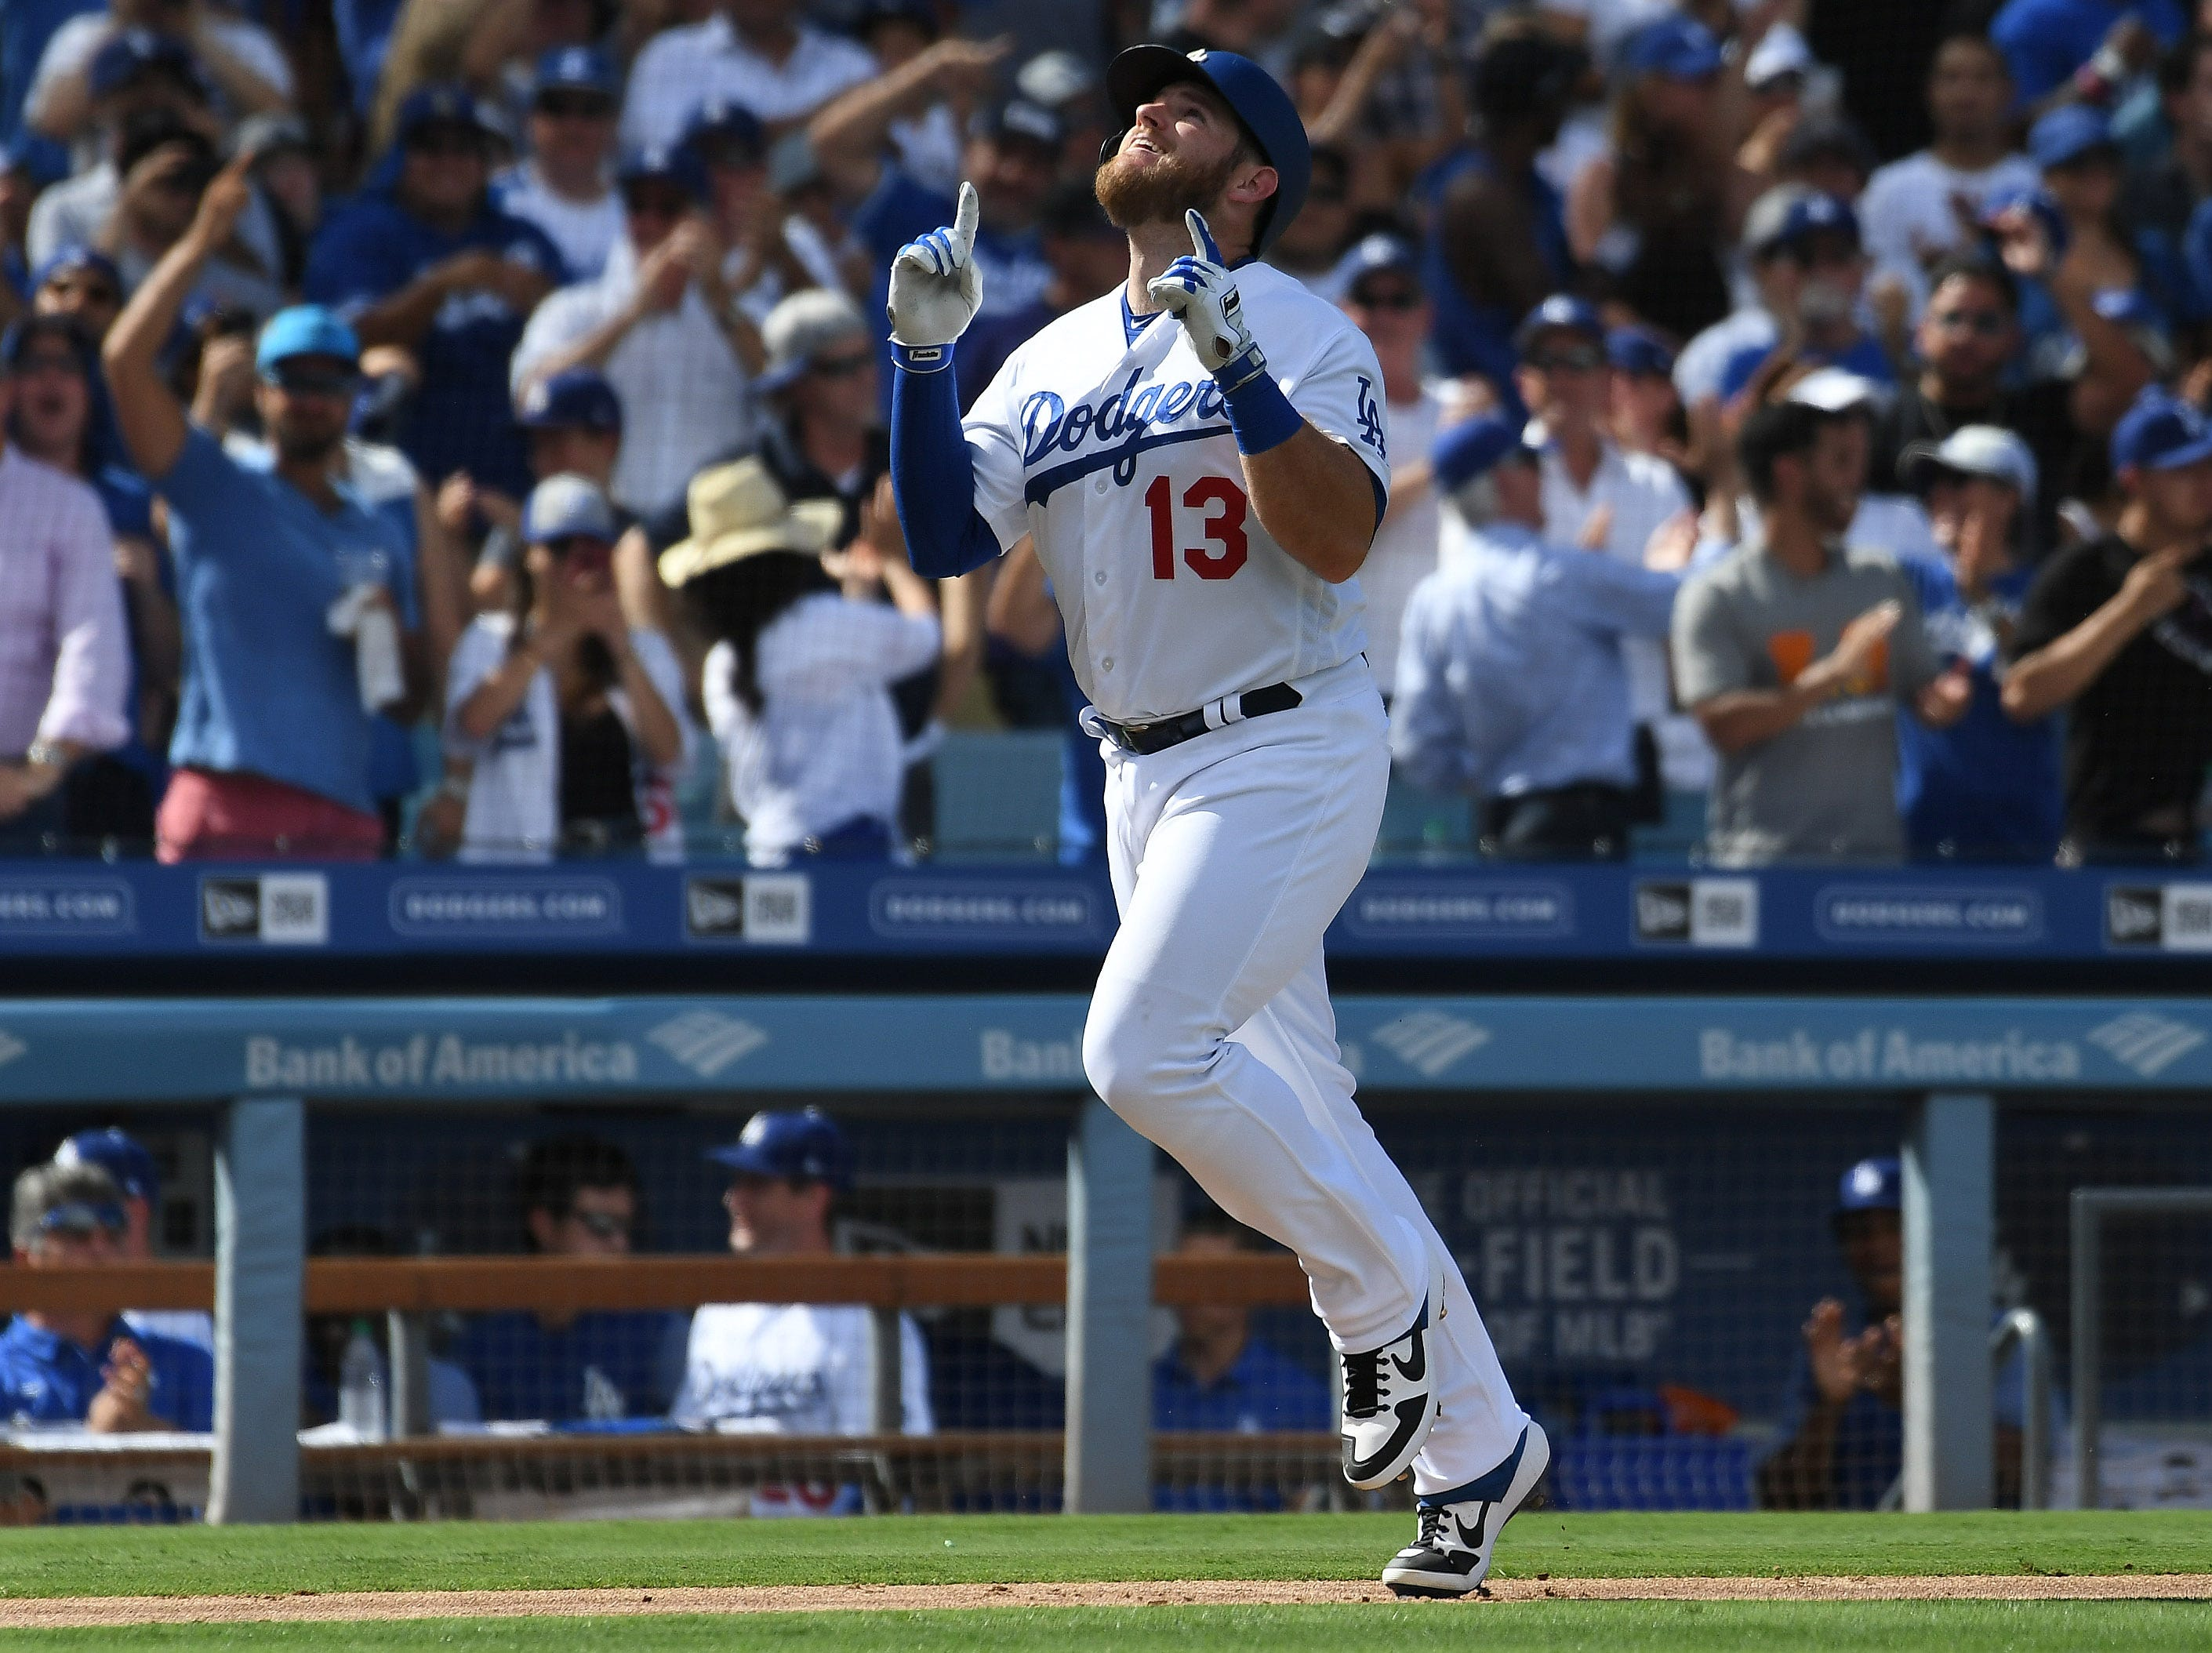 Dodgers first baseman Max Muncy reacts after hitting a two-run homer in the fifth inning.